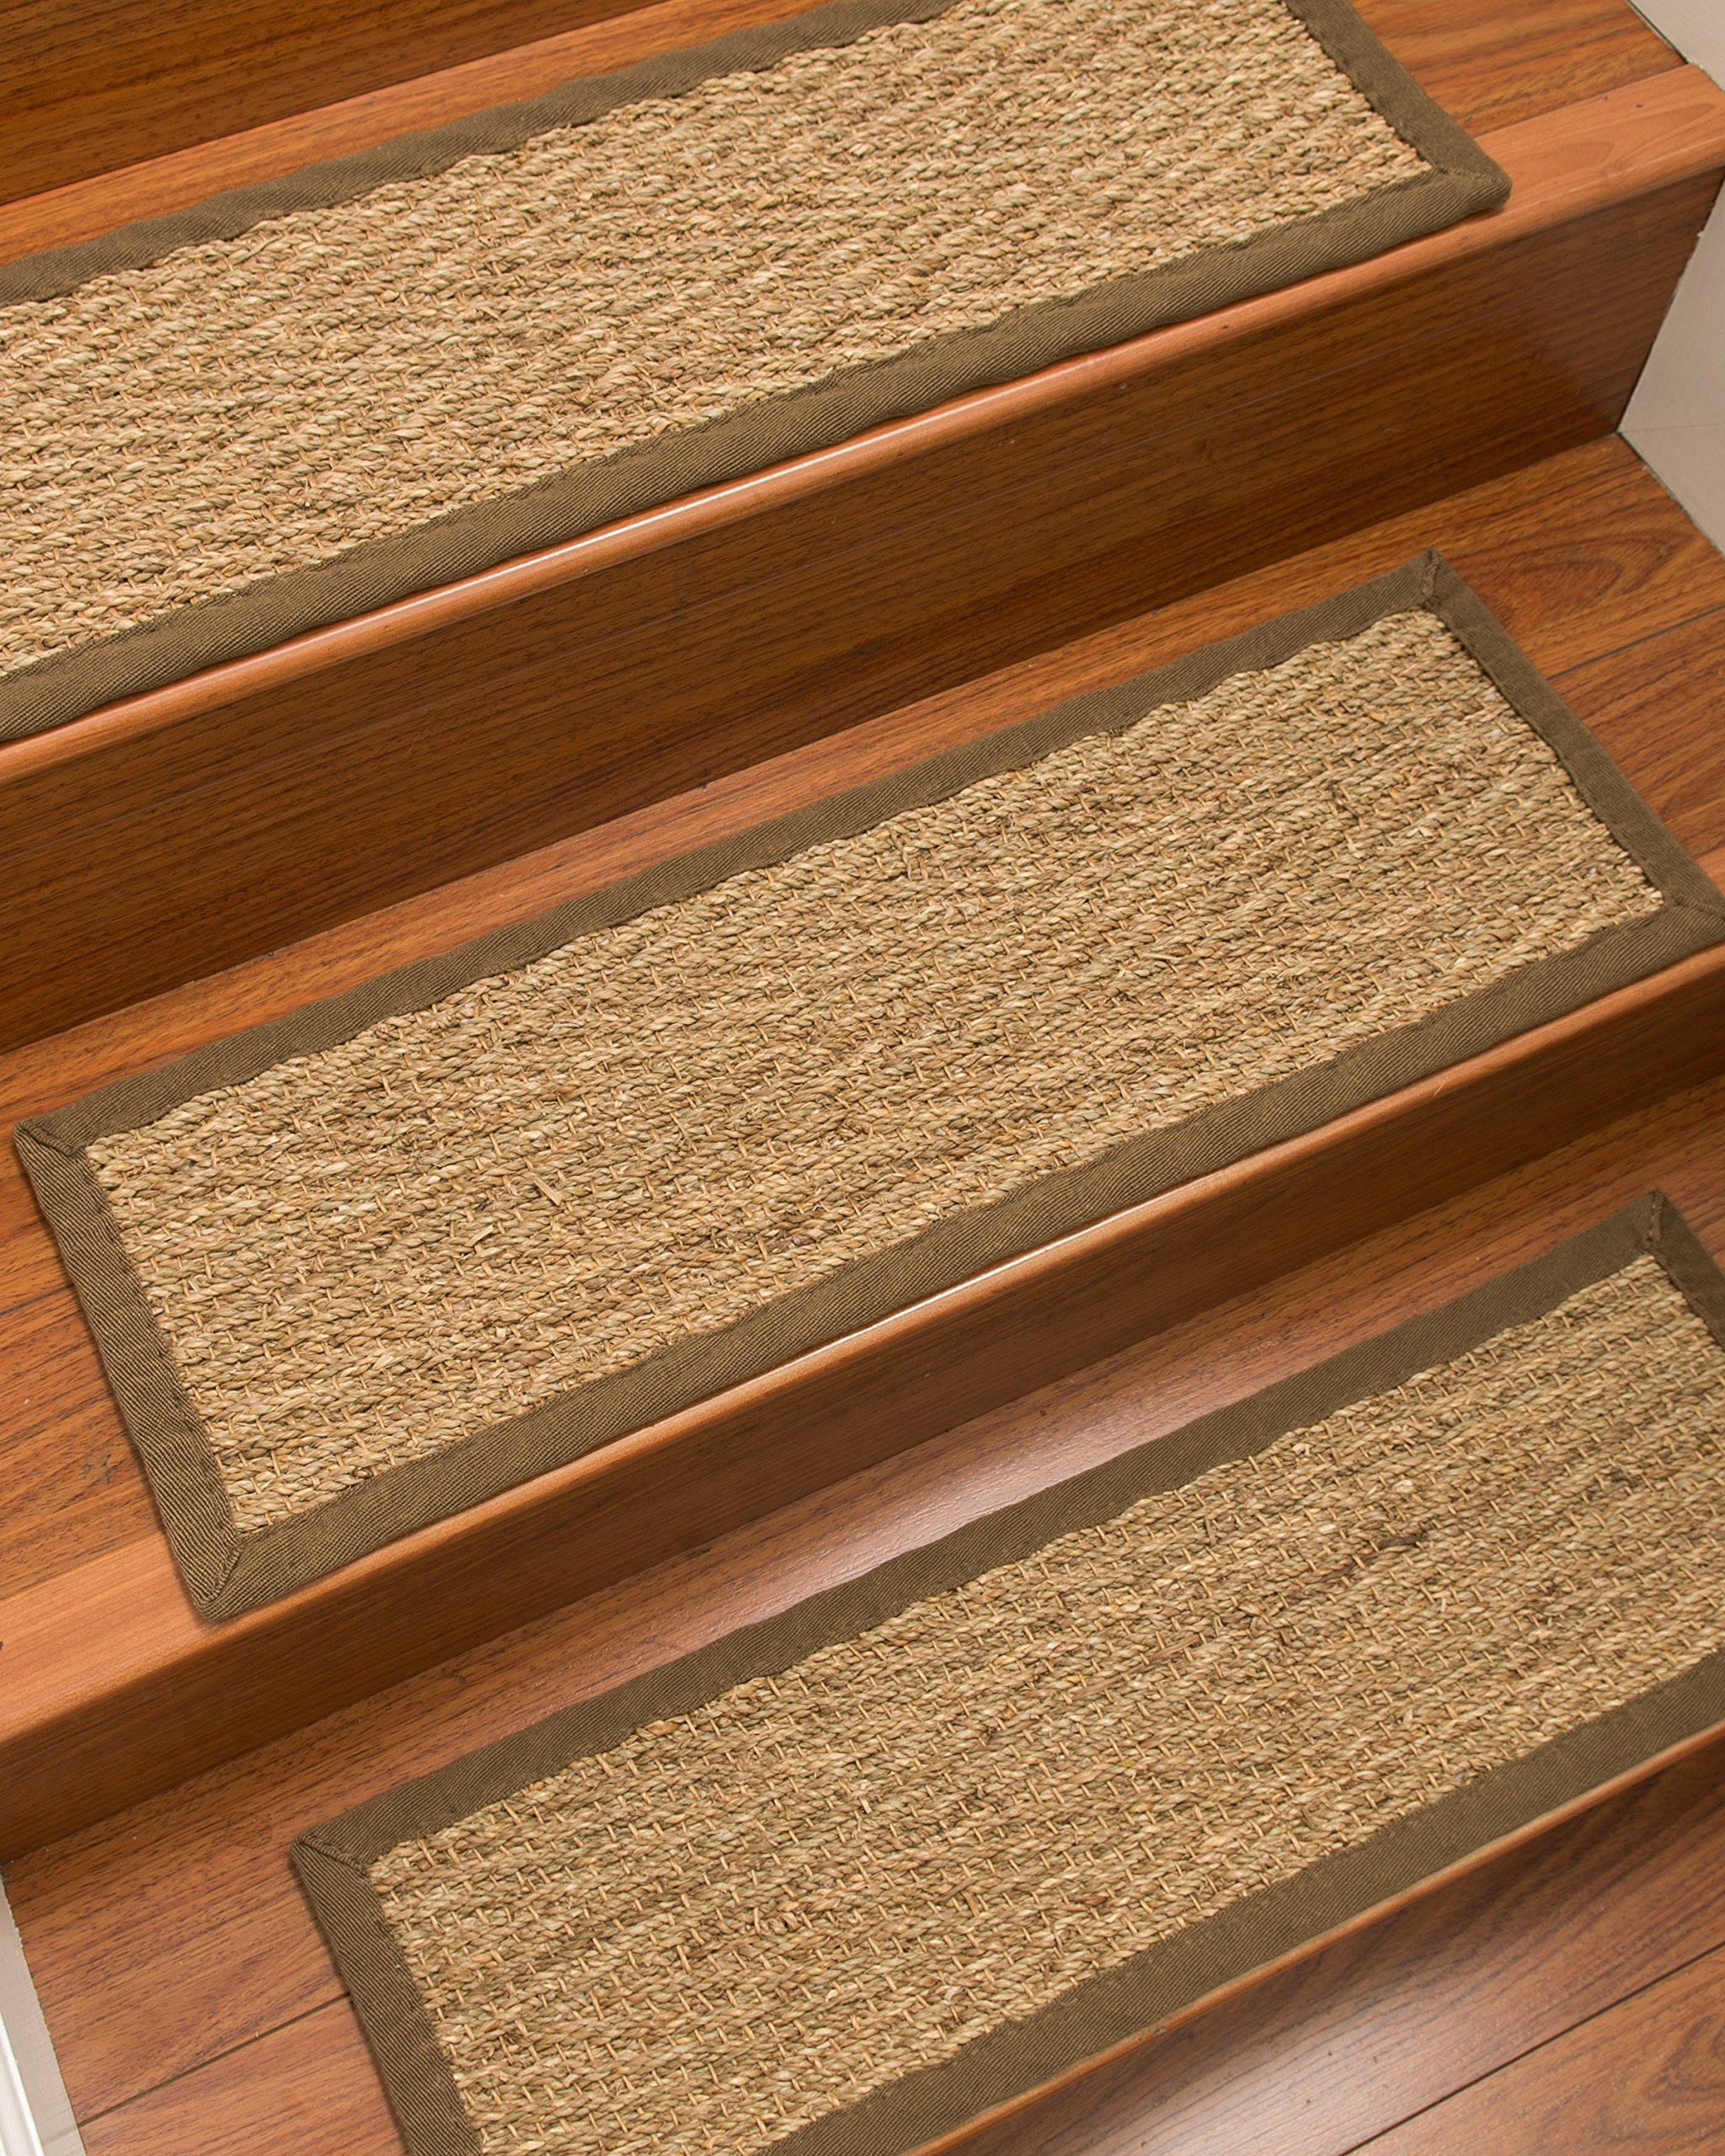 NaturalAreaRugs Handcrafted Beach Seagrass Carpet Stair Treads Beige, 9'' x 29'' Set of 13